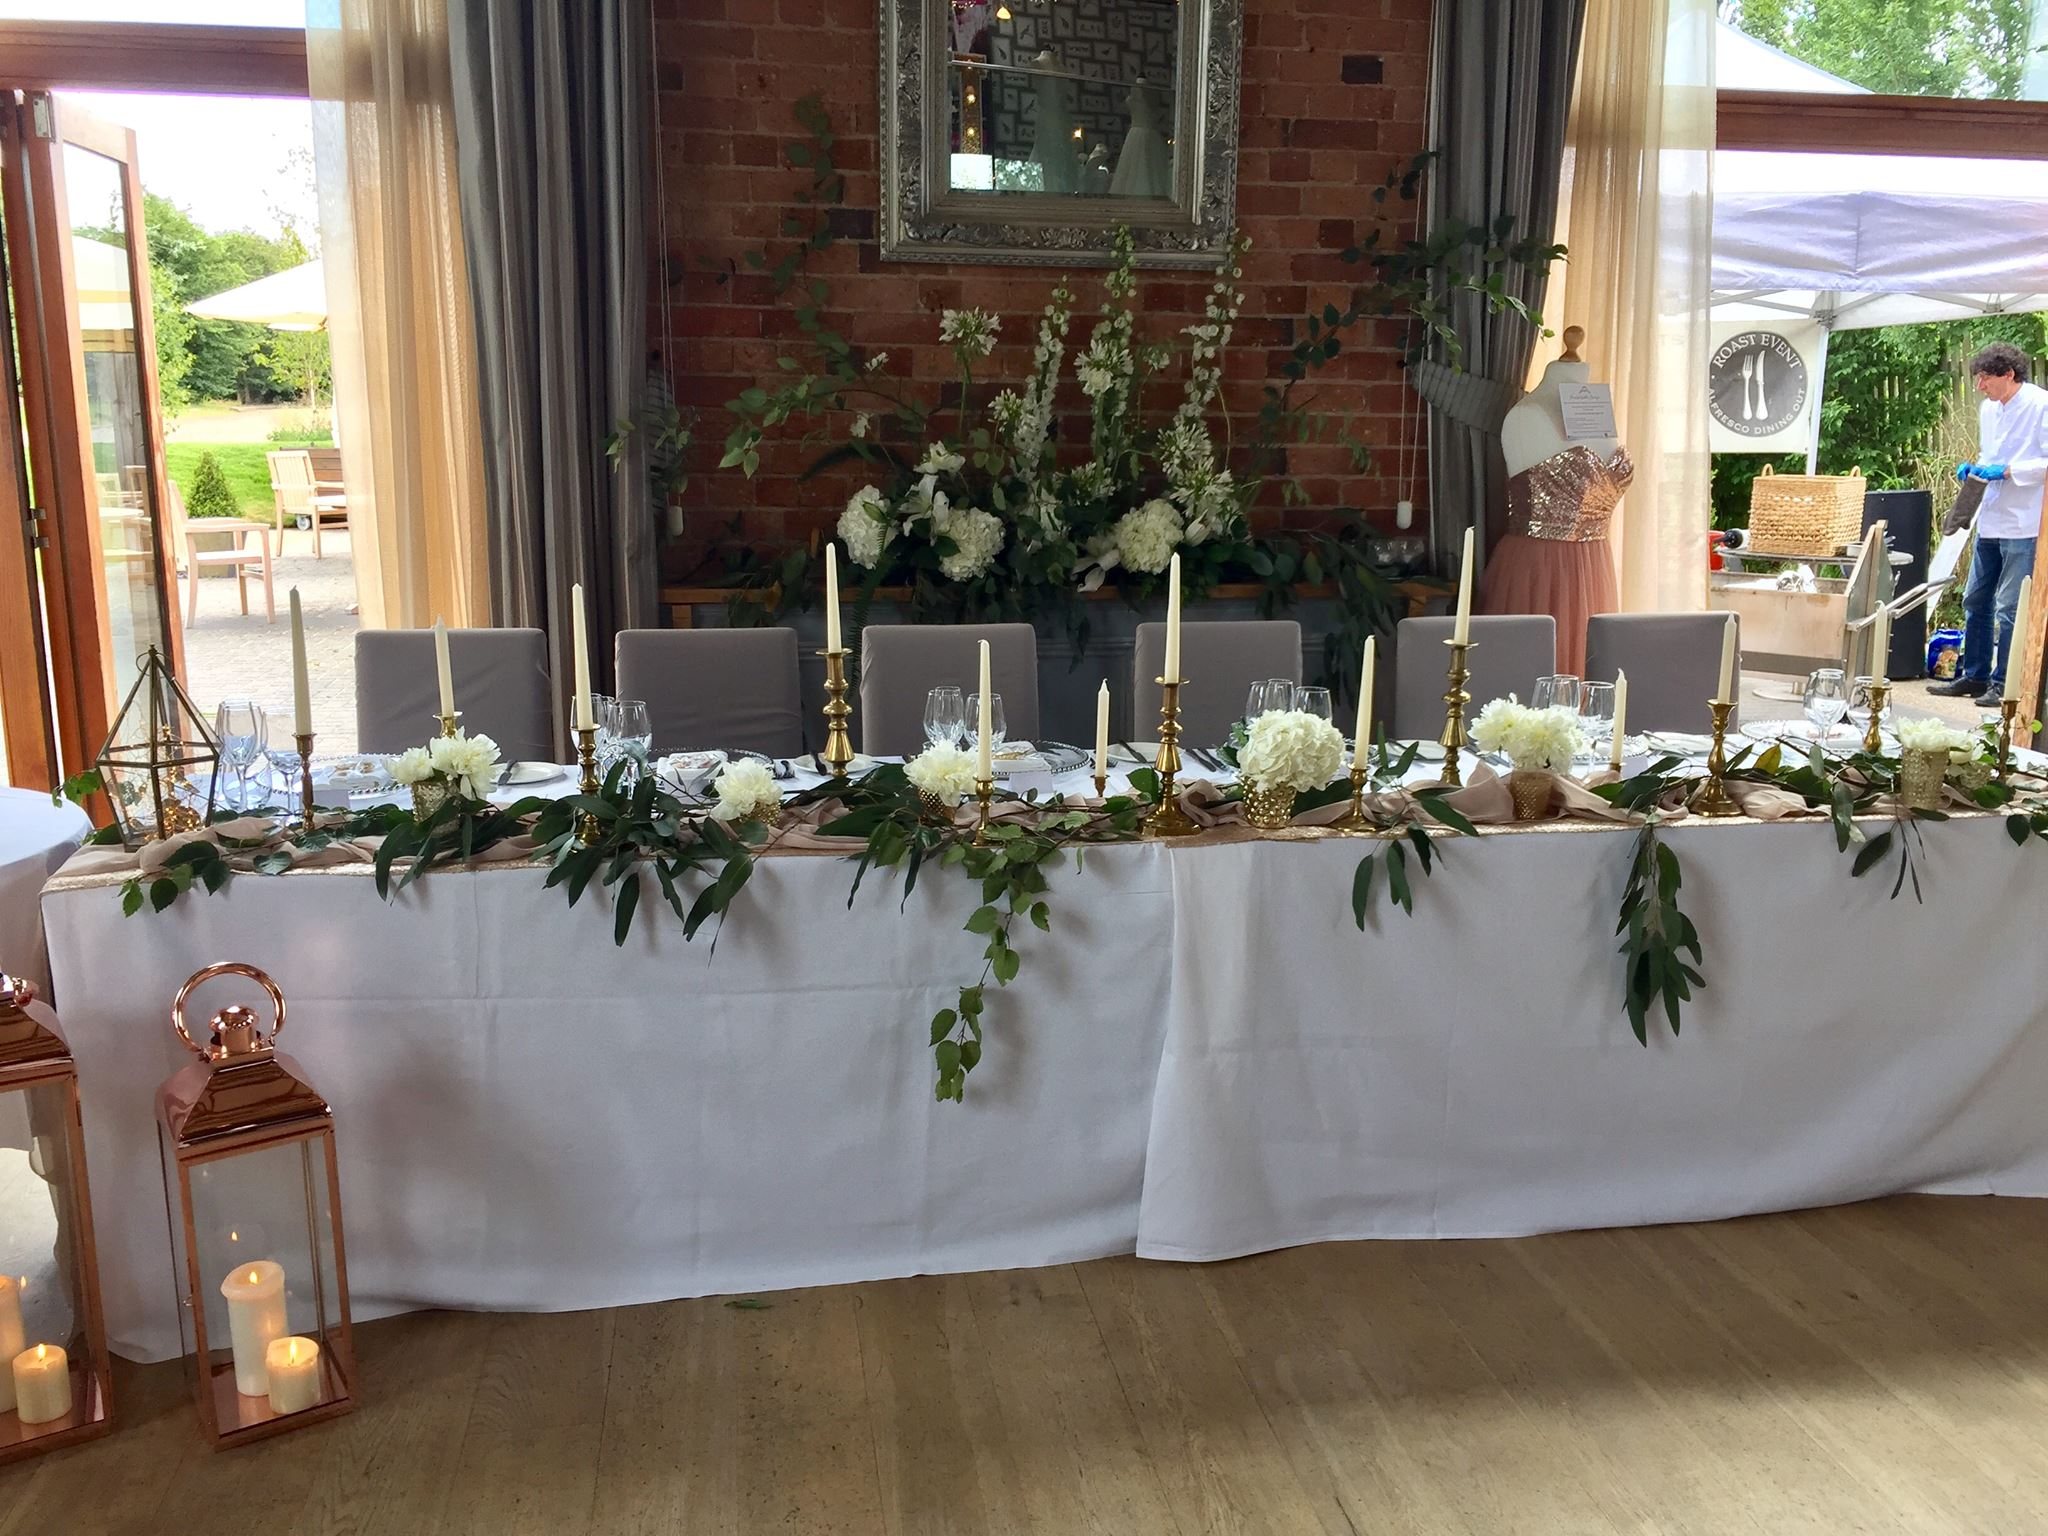 The Carriage Hall Summer Wedding Fair July 2017